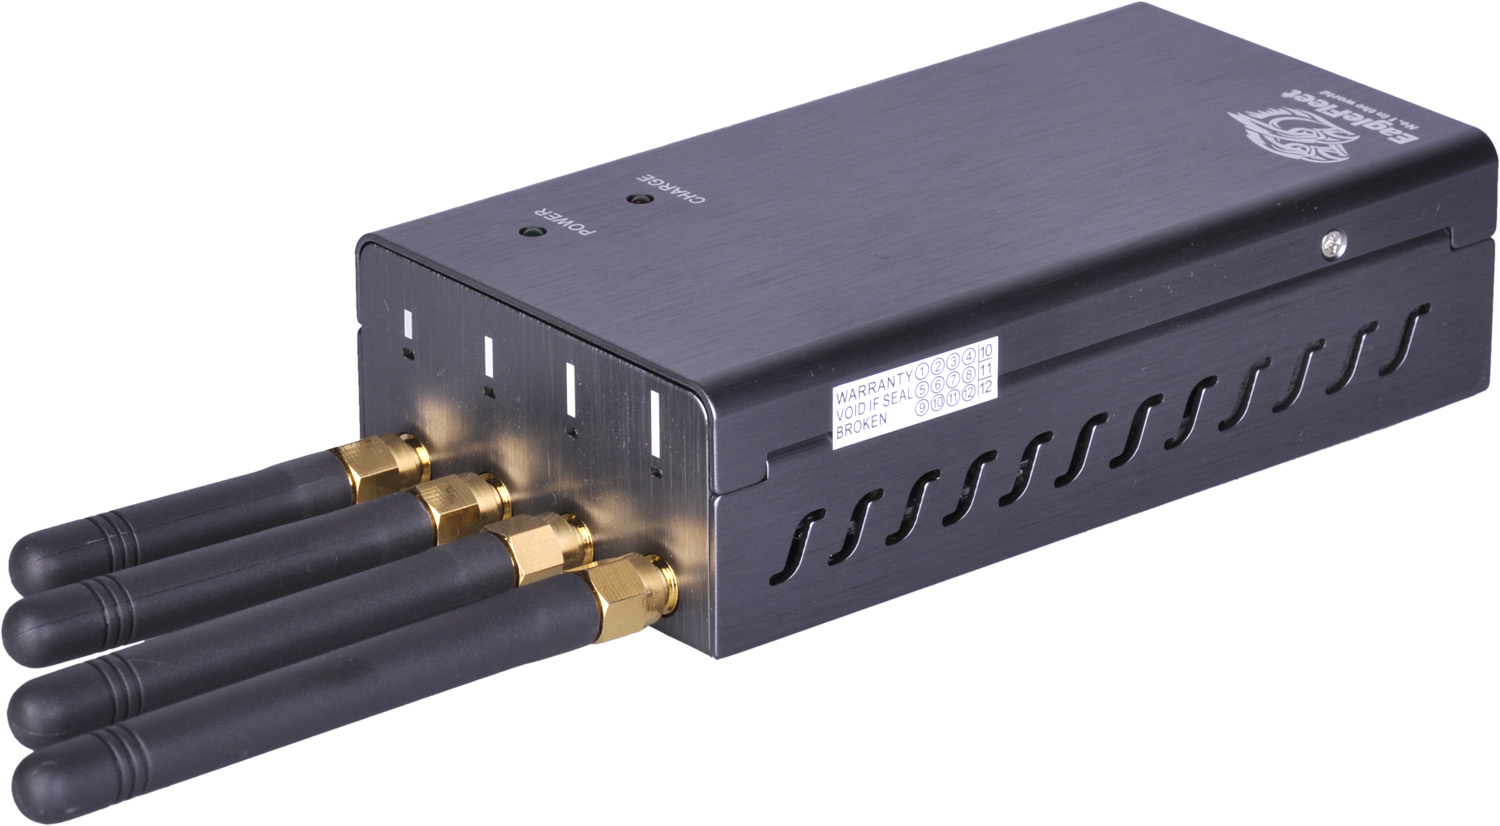 Cell phone jammers laws - cell blocker mobile phone jammer